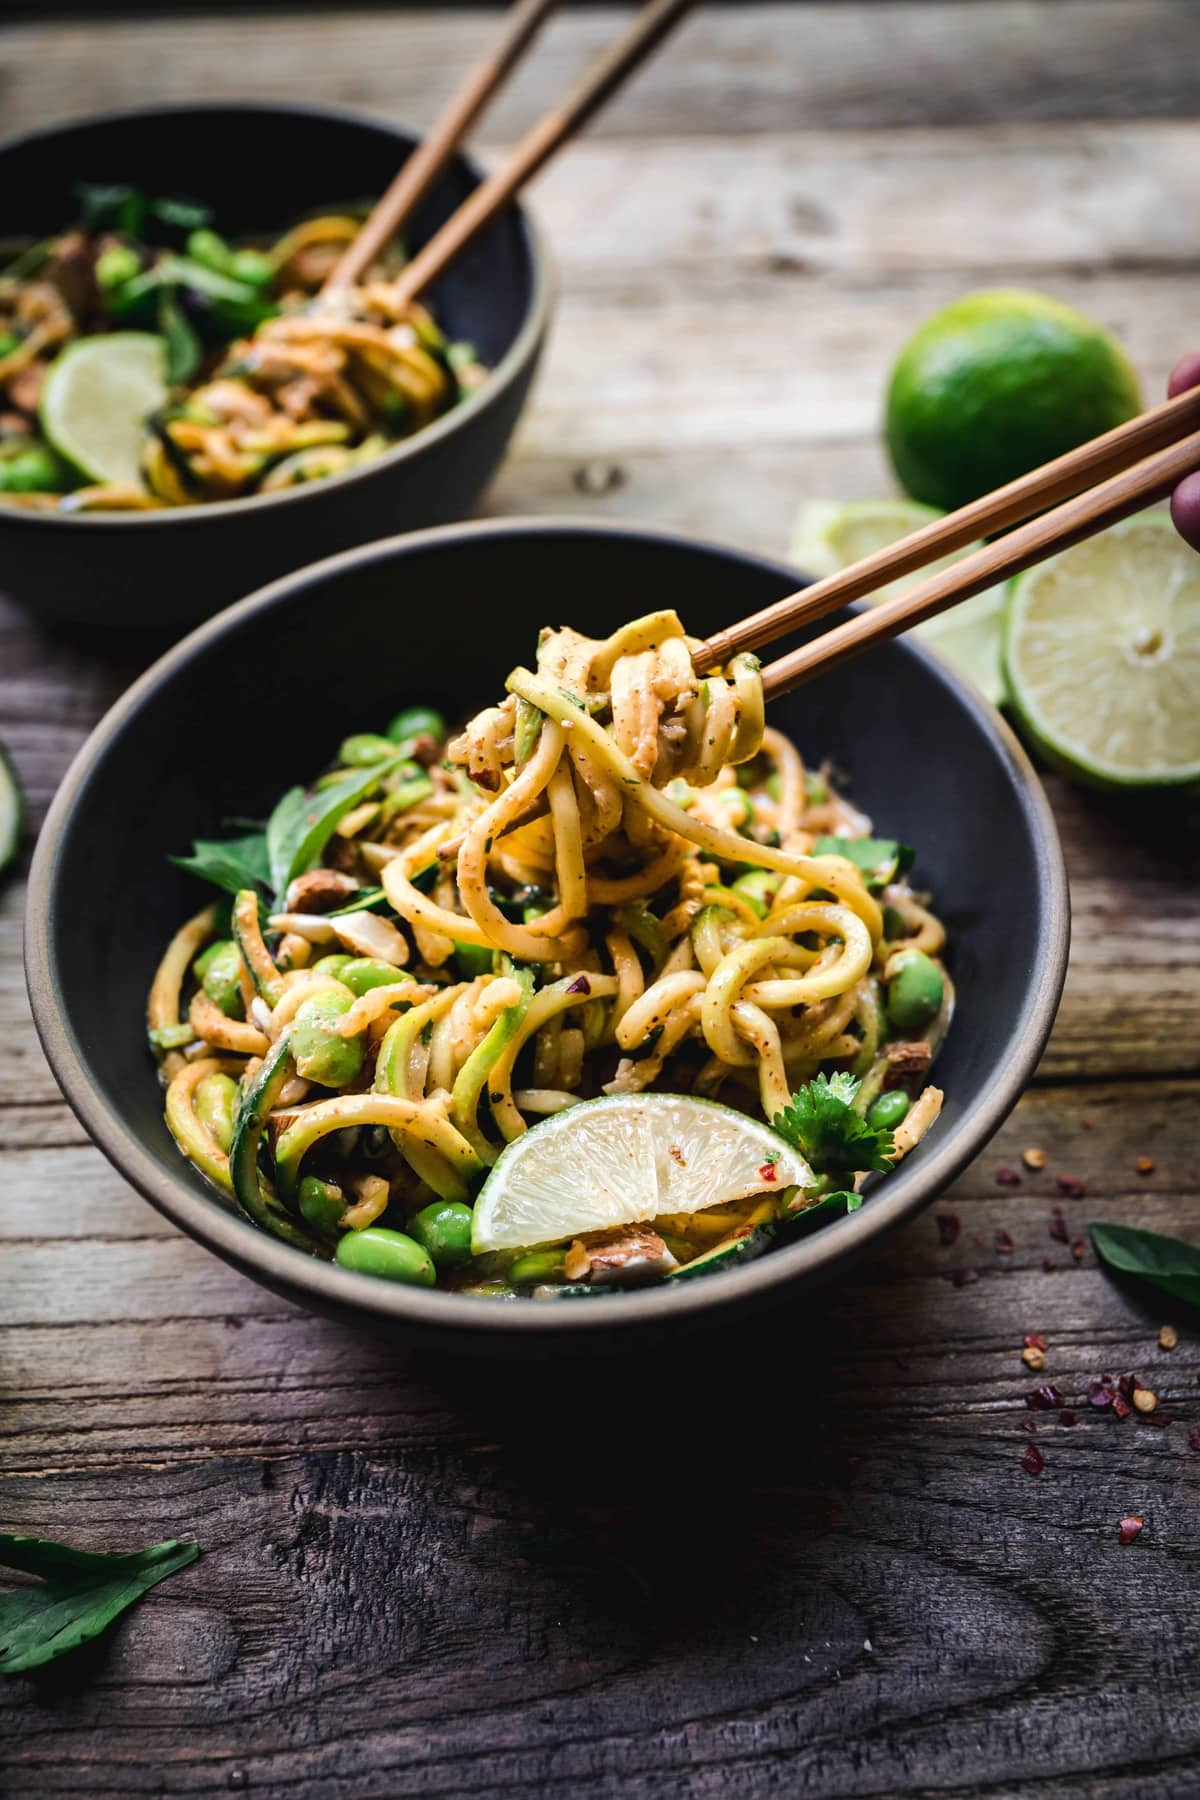 45 degree angle of red curry almond butter zucchini noodles in a bowl with chocpsticks